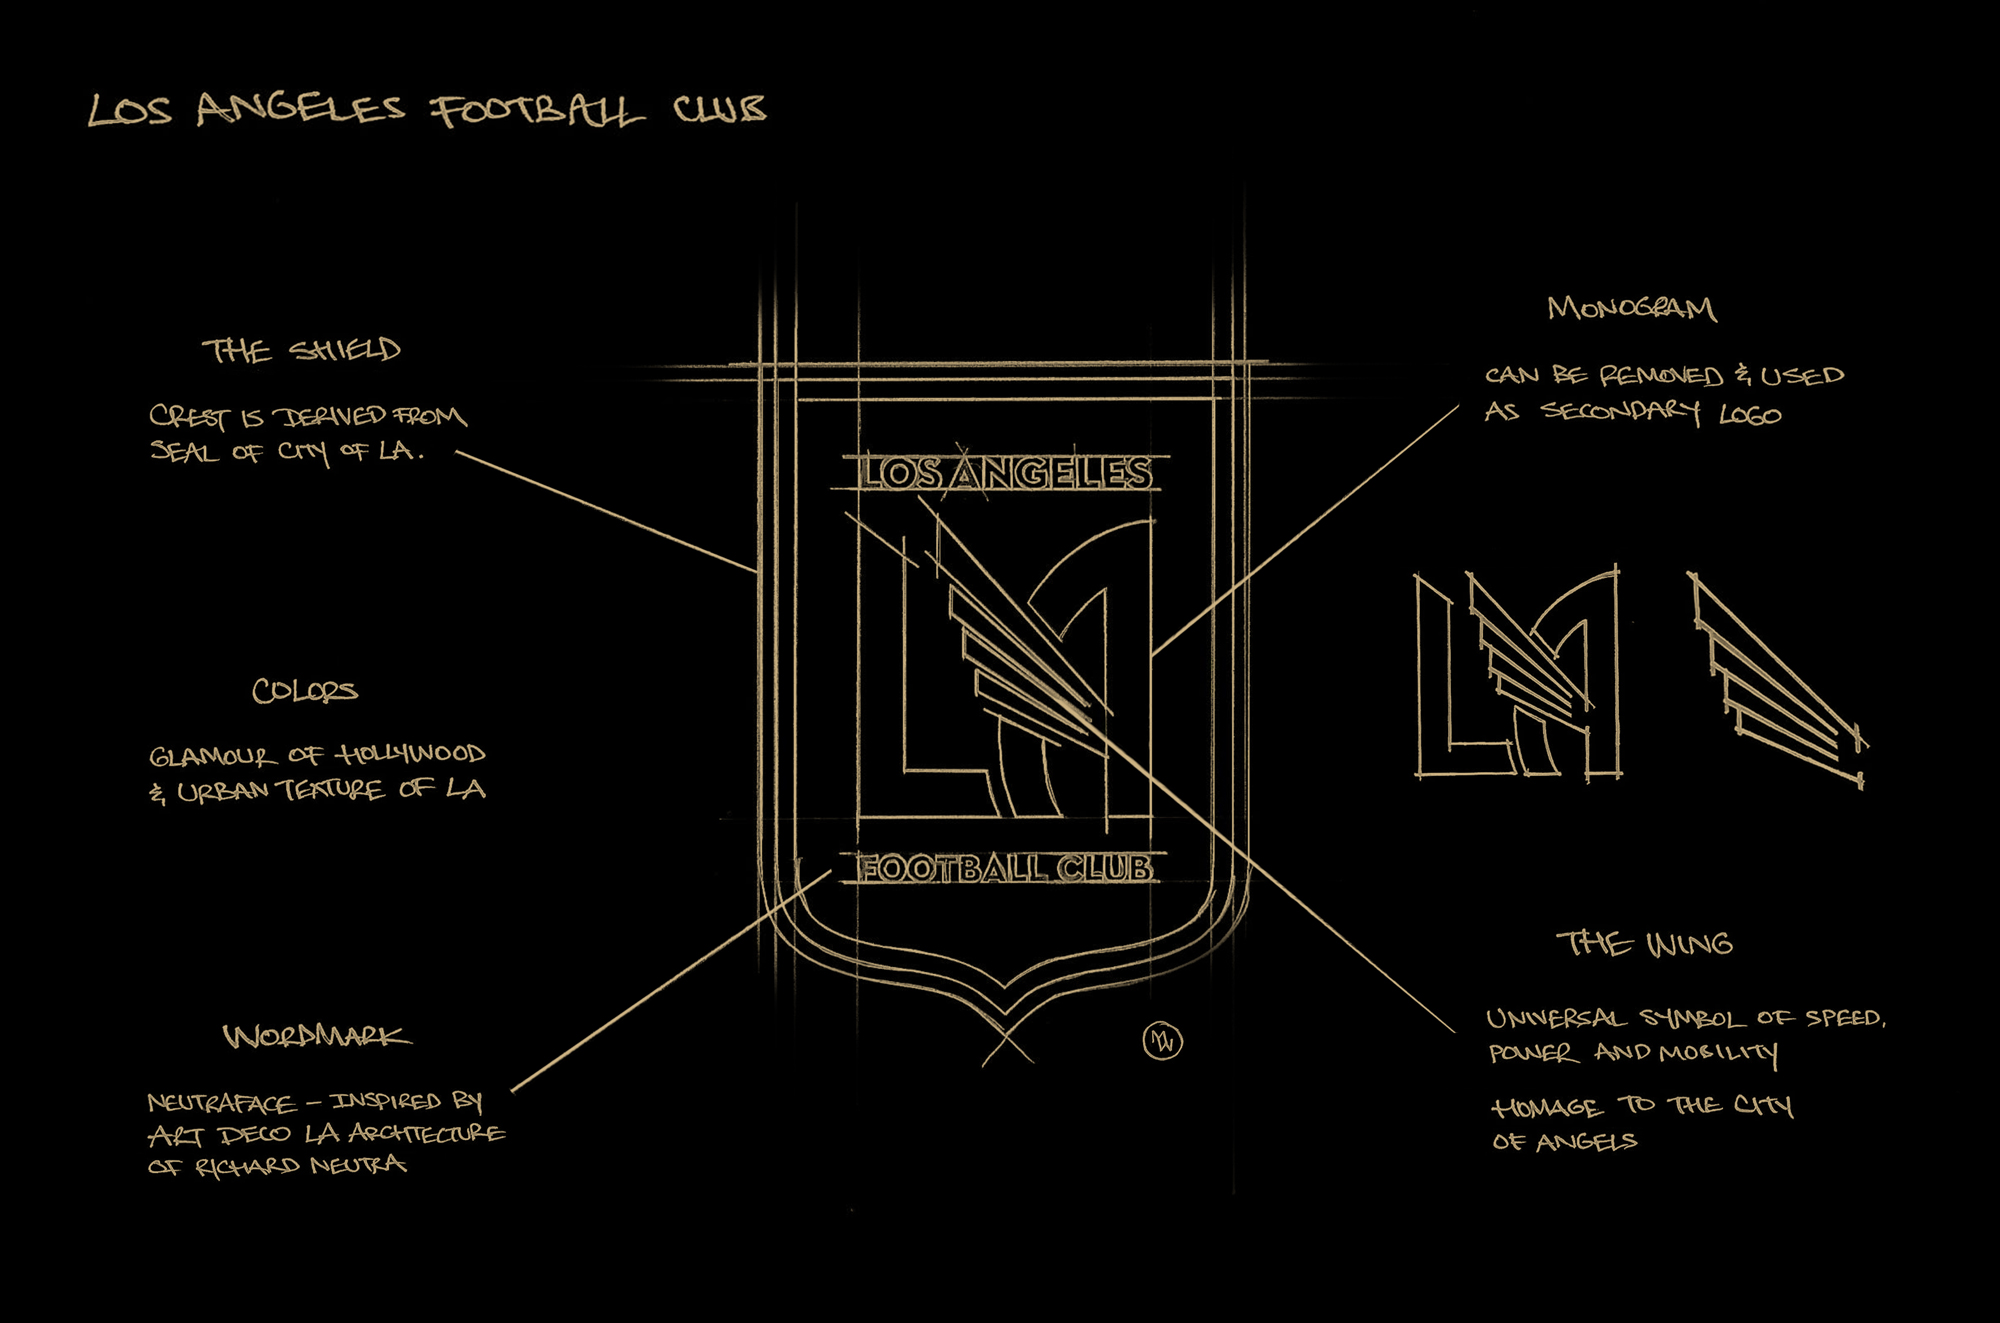 Sketch, LAFC Designer, LAFC Logo, Matthew Wolff Design, Soccer, Football, Crest, Badge, Logo, Los Angeles FC, Club, Los Angeles Football Club, MLS, Adidas, Artist, Graphic Designer, Branding